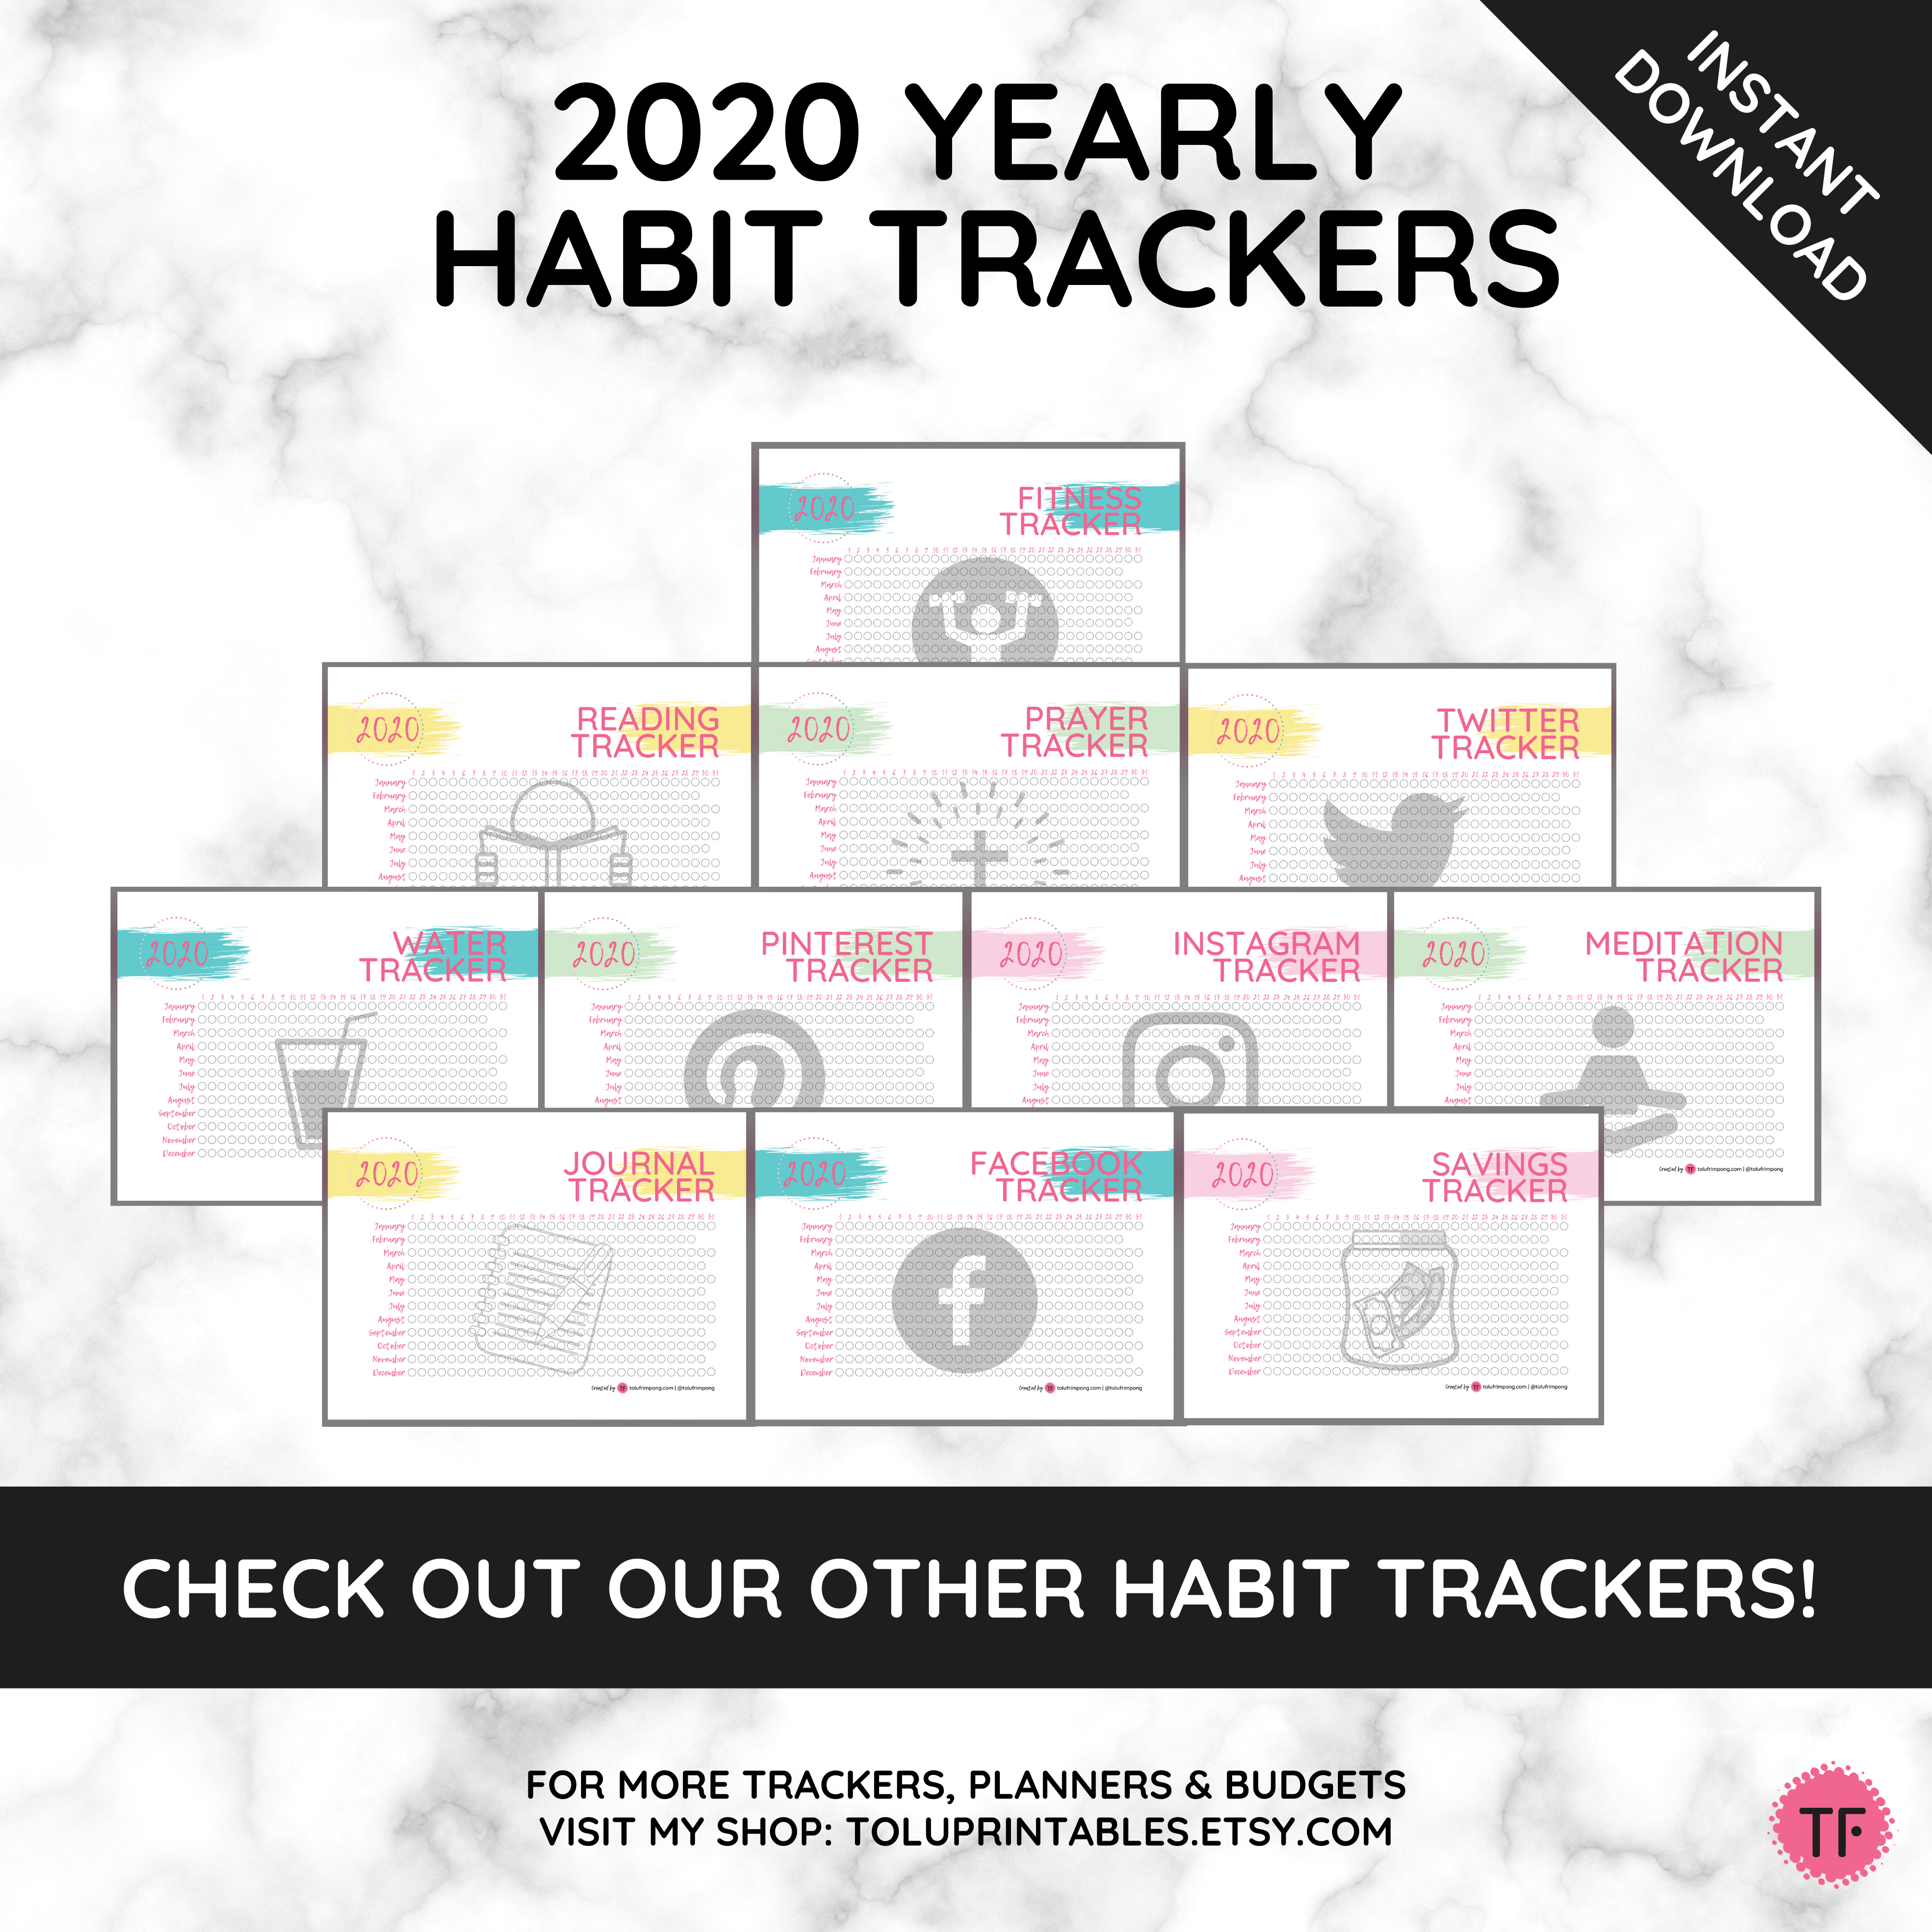 2020 Yearly Daily Exercise Habit Tracker for Planners and Bullet Journalling